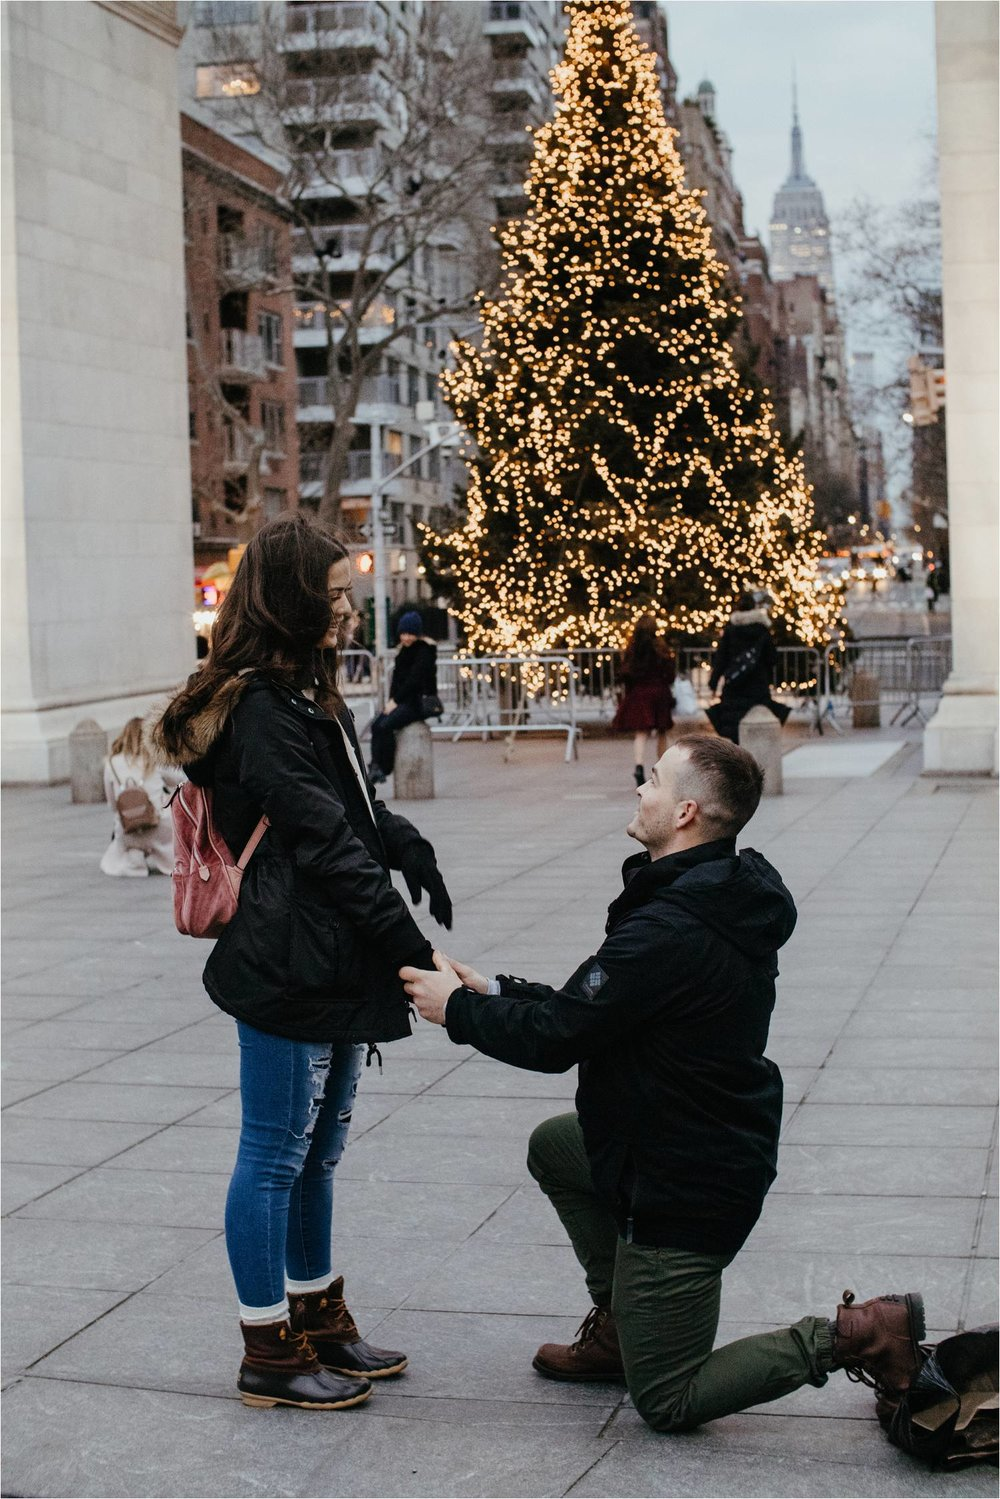 nyc proposal - washington square park engagement - washington square park proposal - nyc engagement photos - winter engagement photos nyc